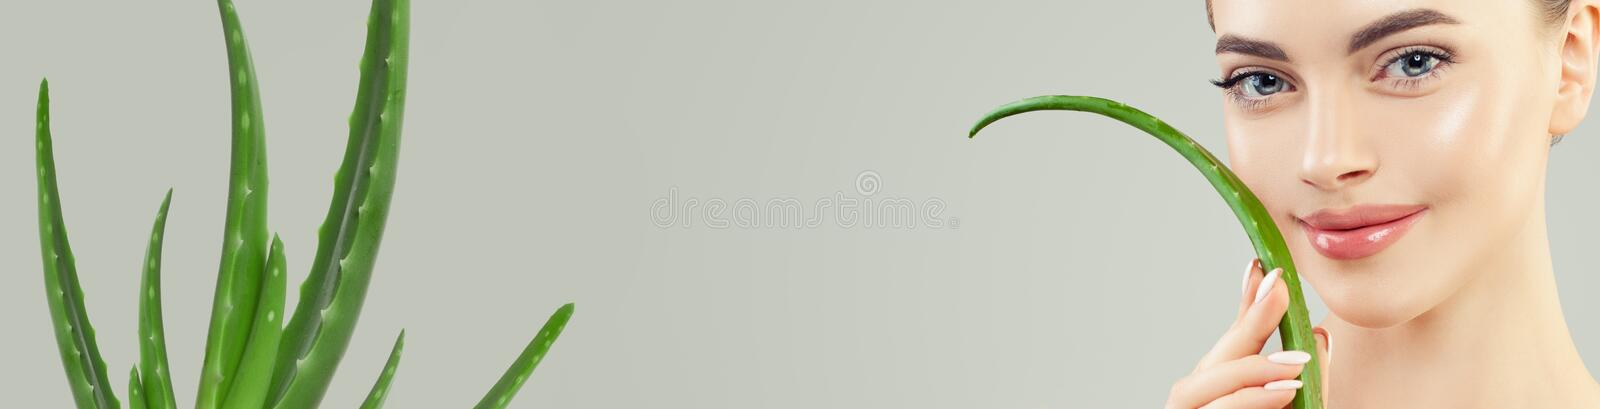 Closeup portrait of young woman with healthy skin and green aloe vera leaf in her hands, skincare concept royalty free stock photo